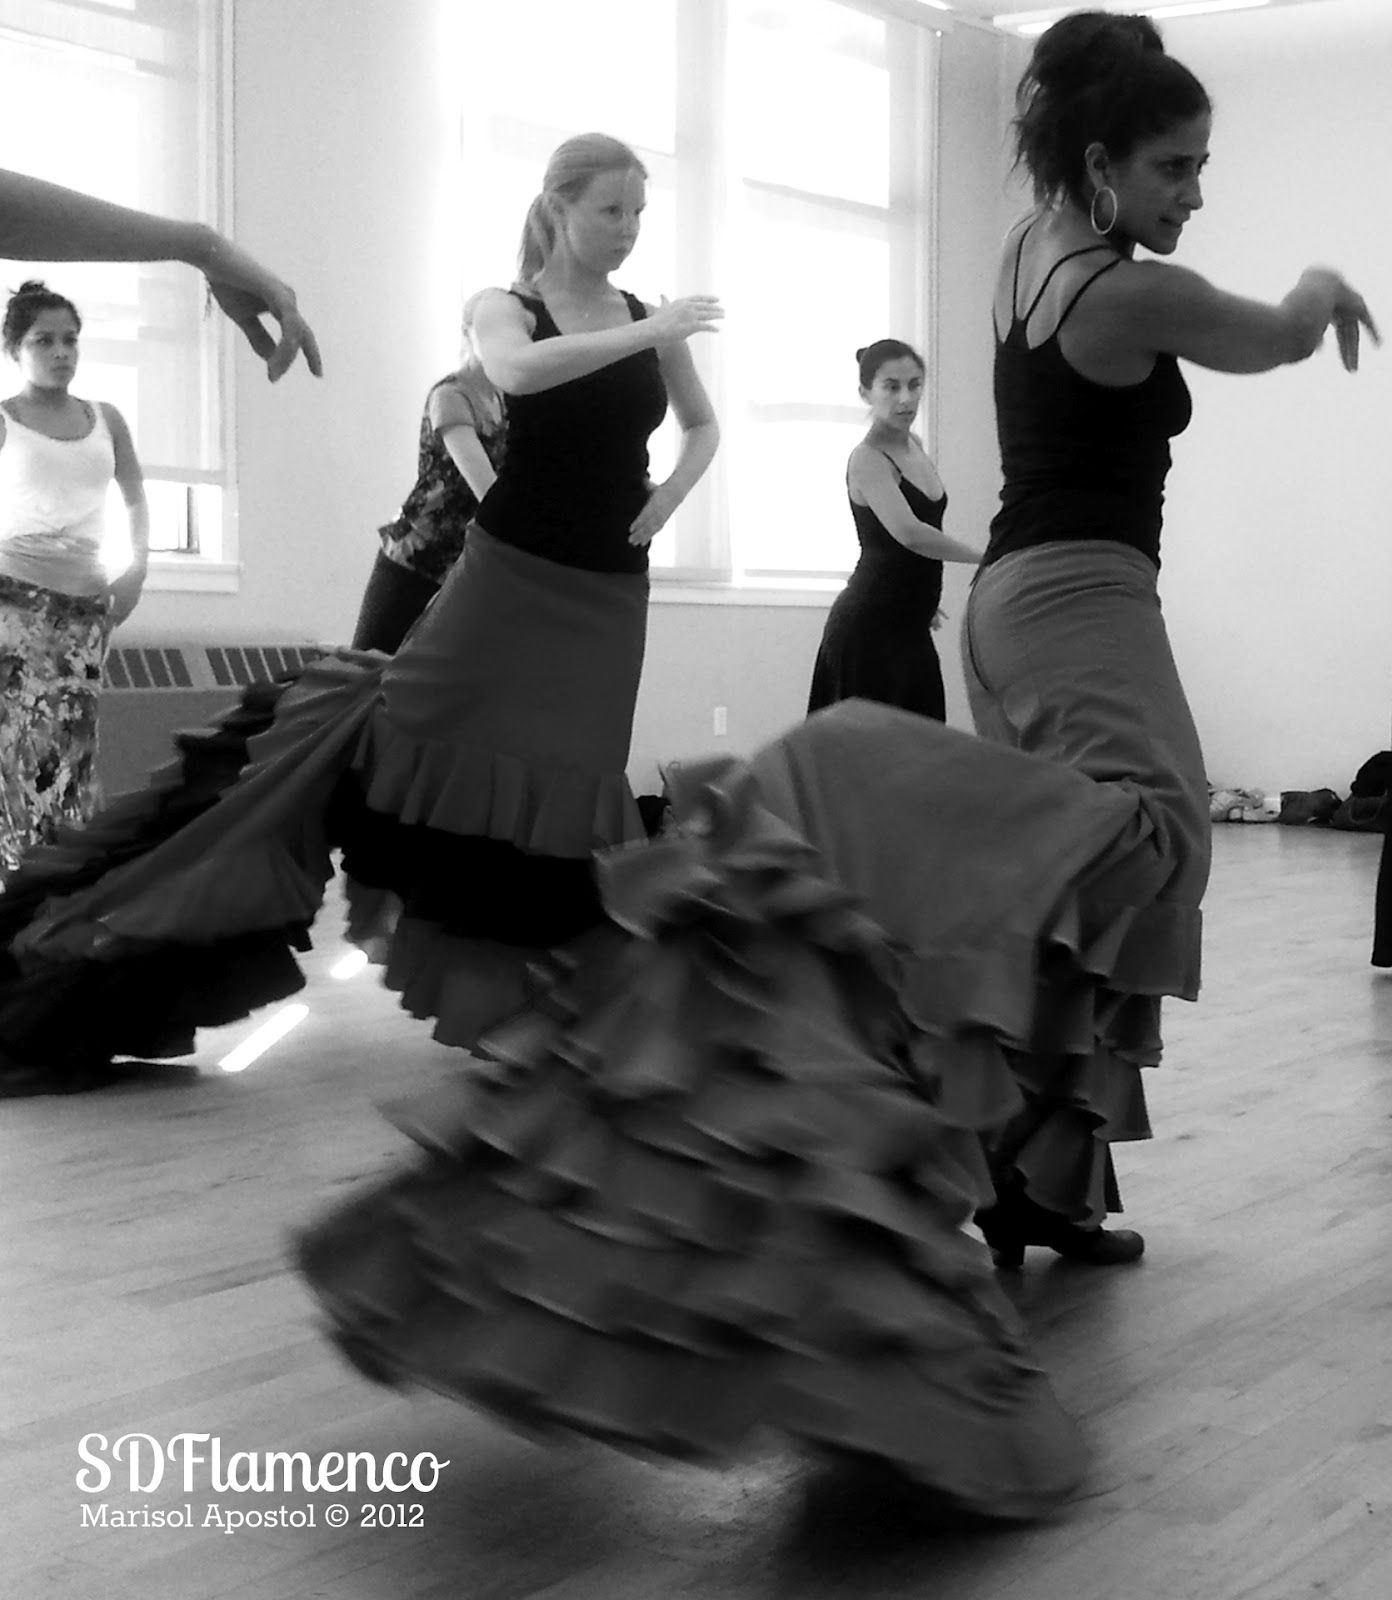 flamenco essay Read this essay on flamenco paper come browse our large digital warehouse of free sample essays get the knowledge you need in order to pass your classes and more only at termpaperwarehousecom.